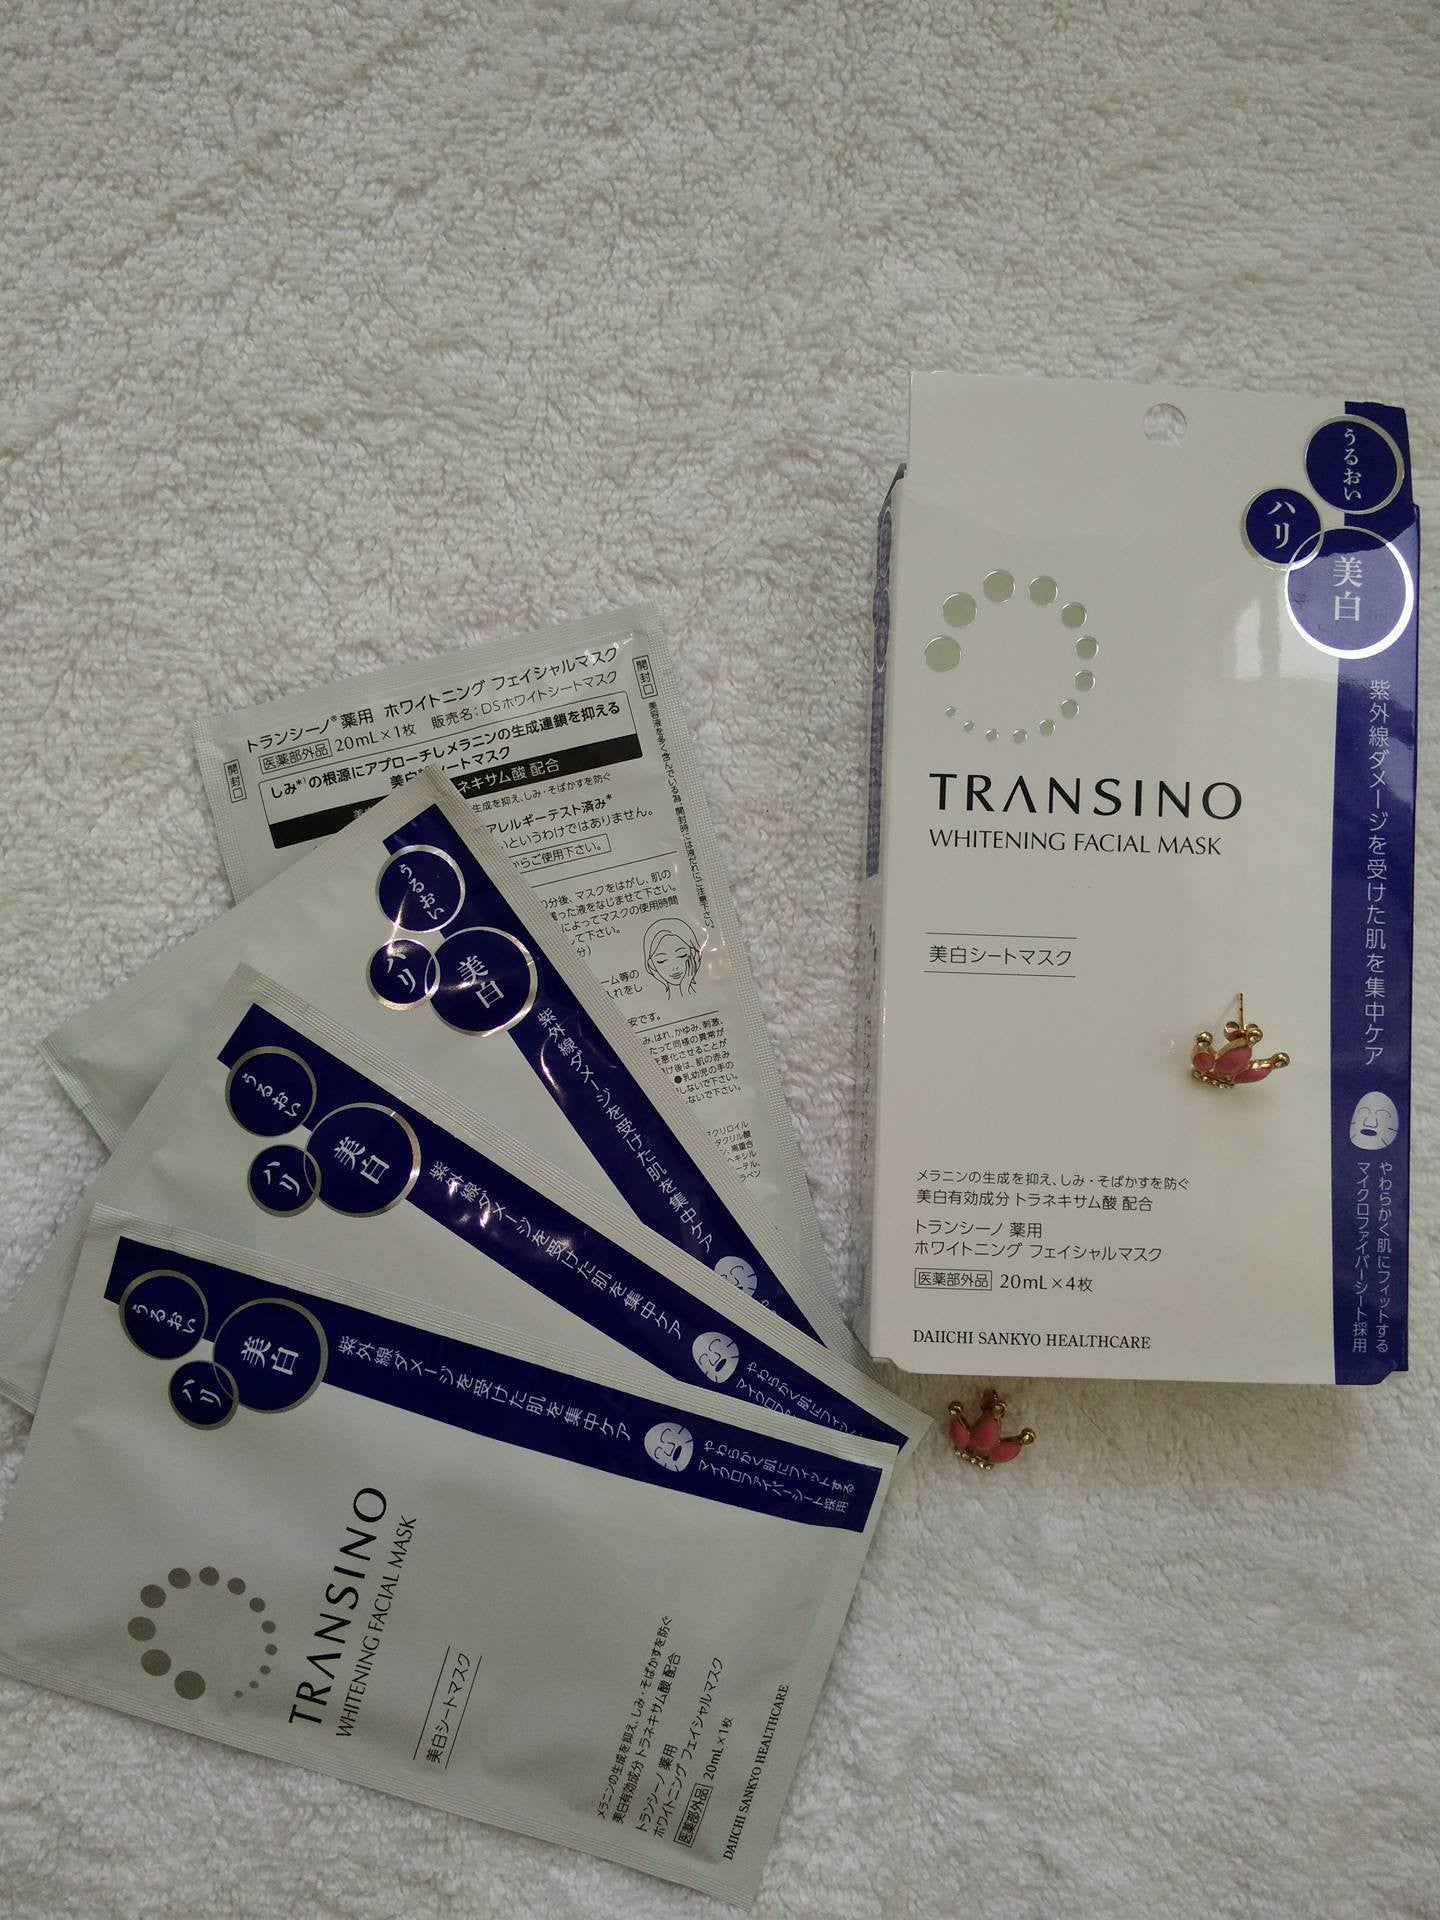 美白准药面膜 Transino Whitening Facial Mask